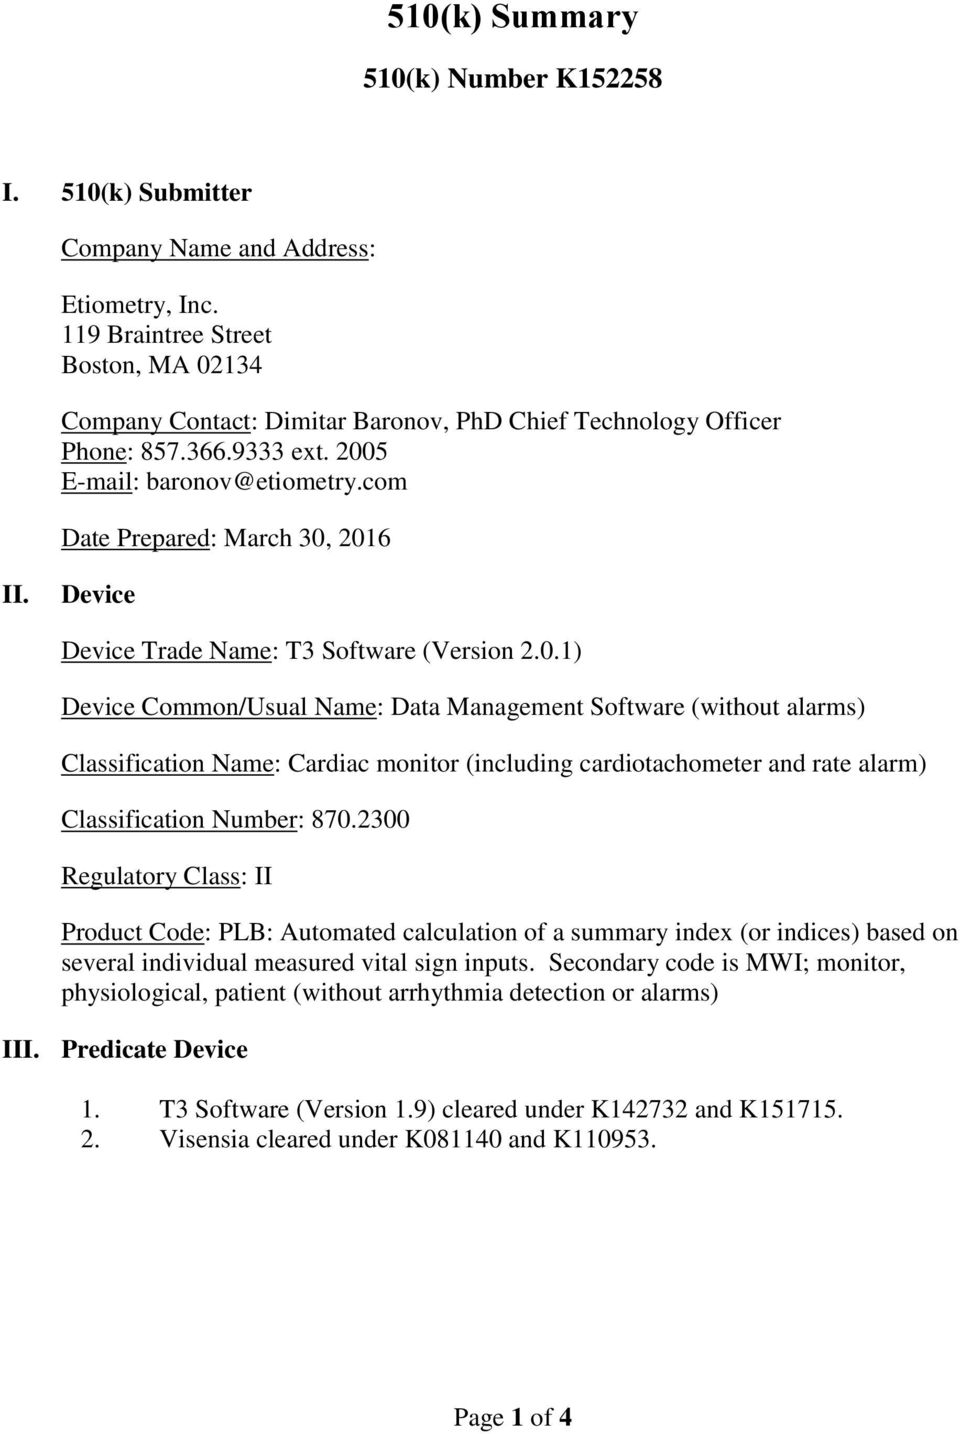 Device Device Trade Name: T3 Software (Version 2.0.